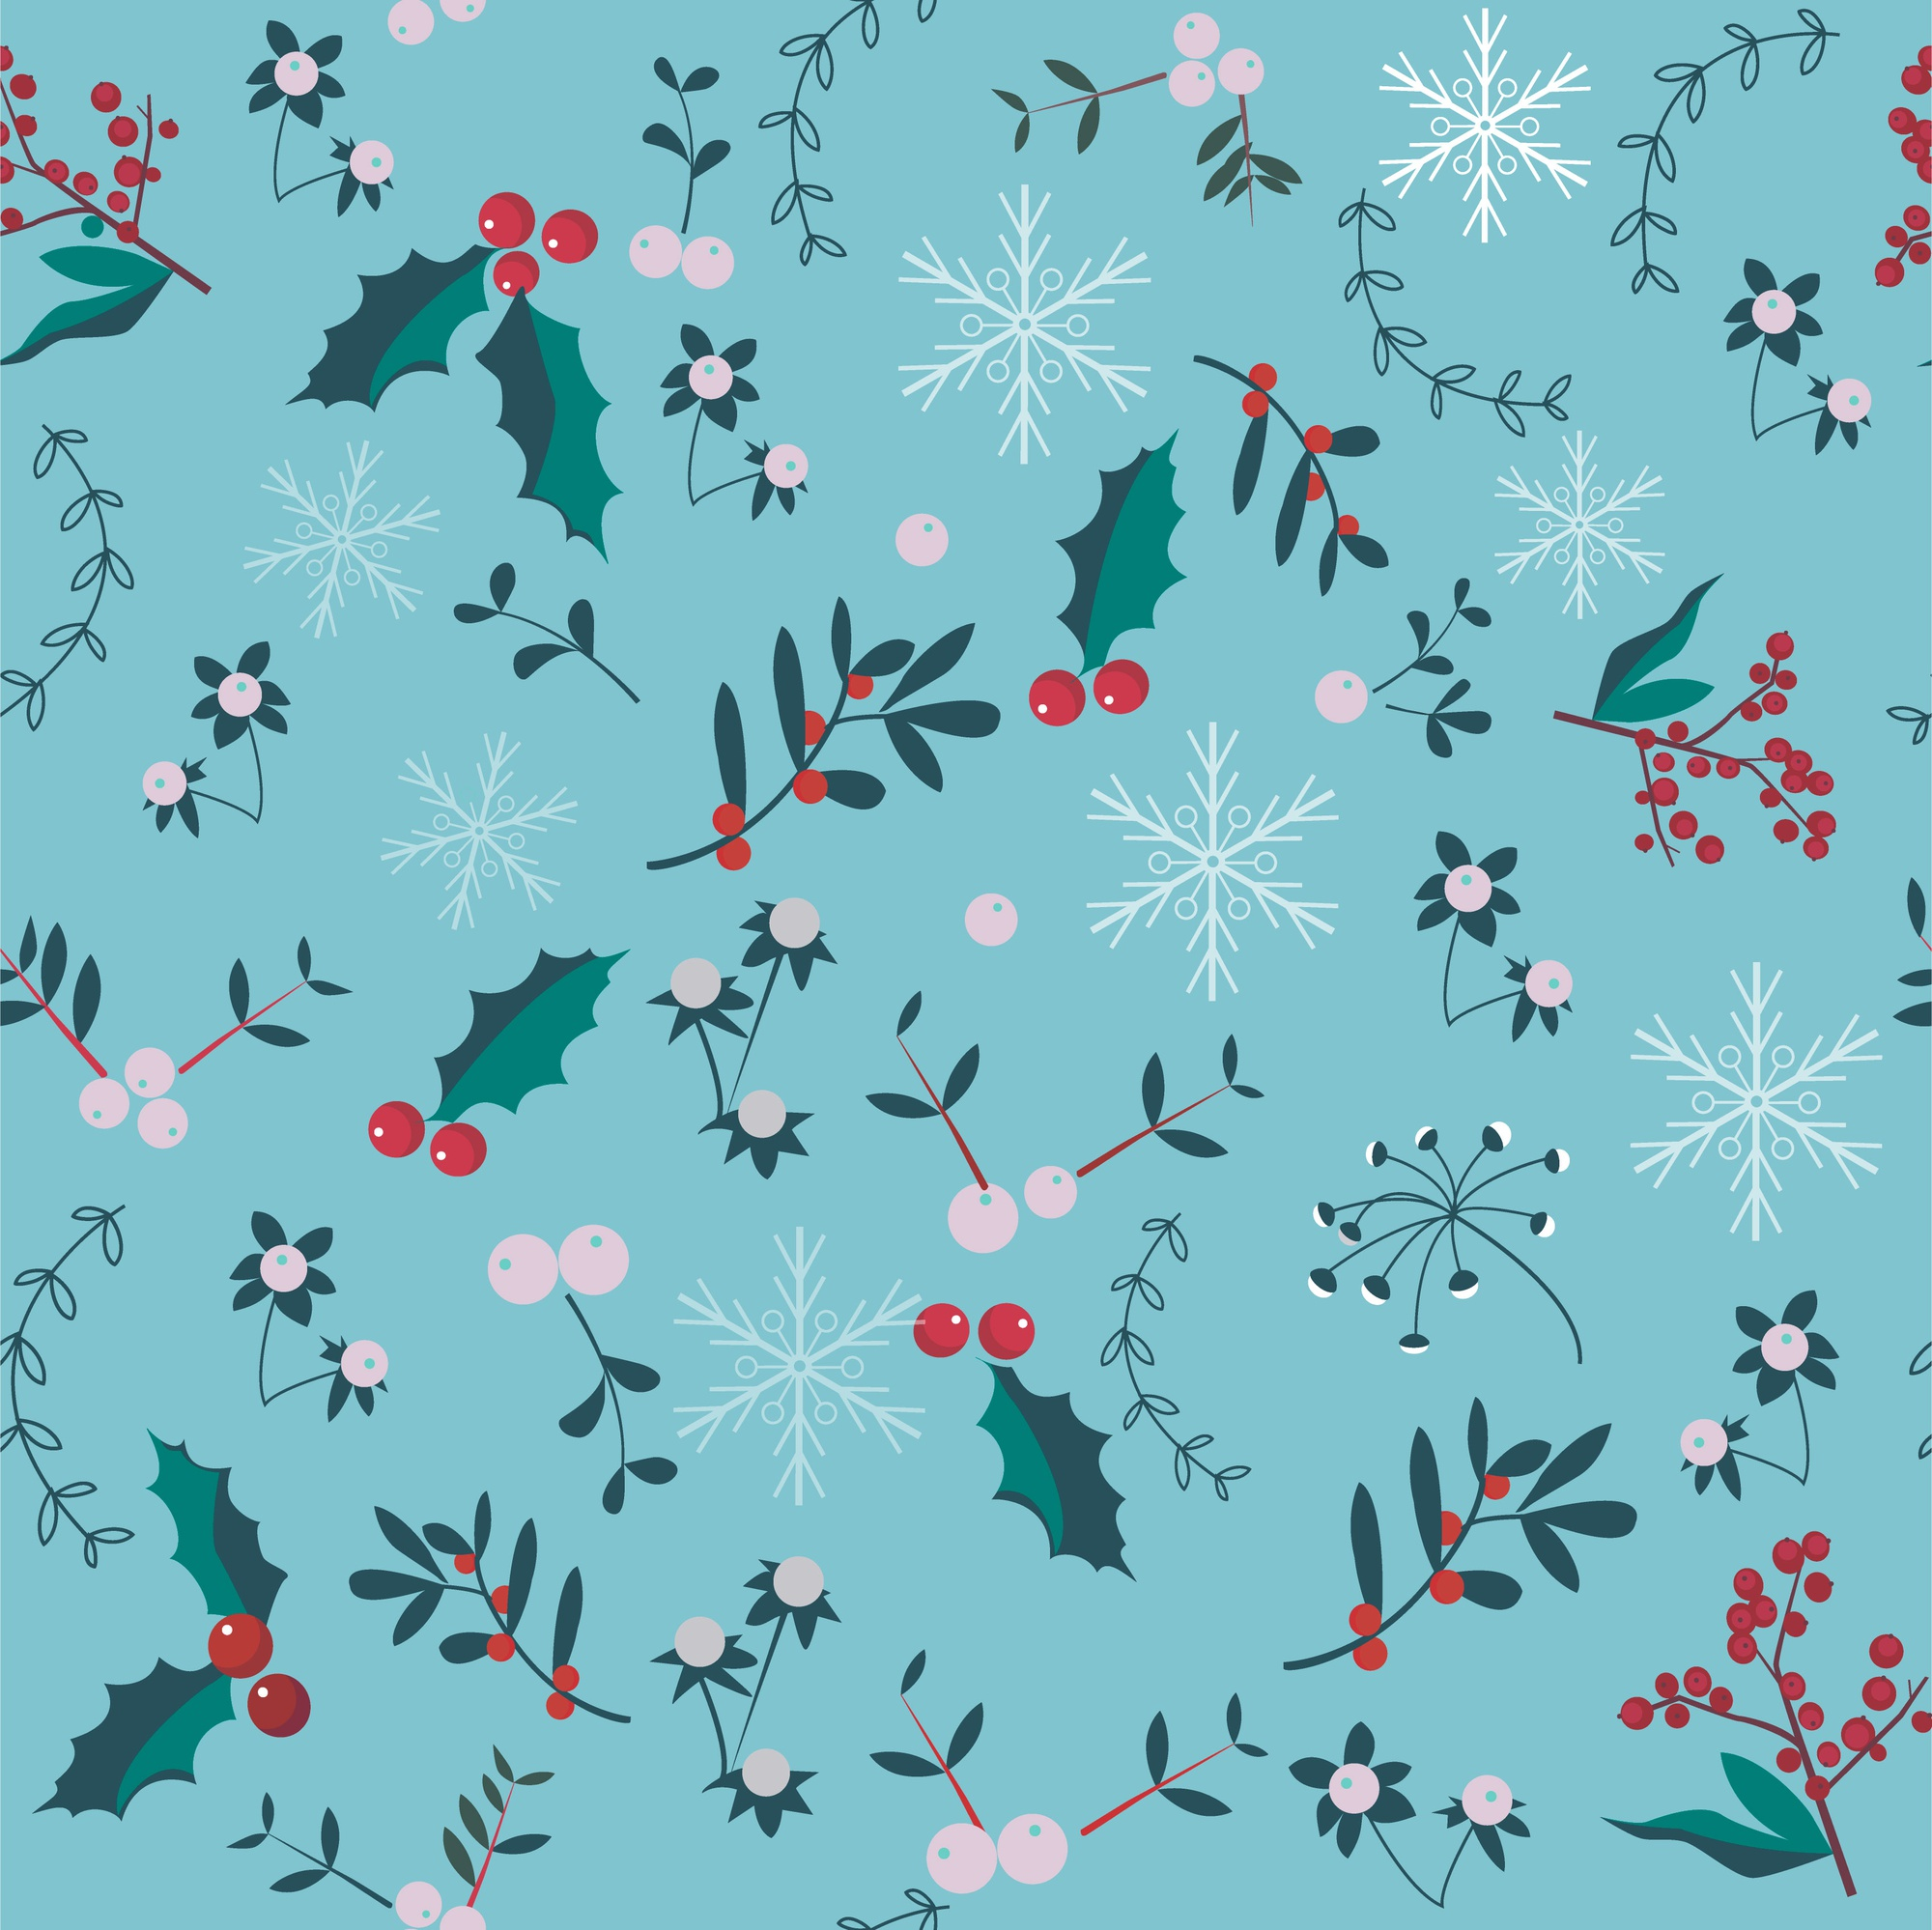 Christmas seamless pattern with holly berries, snowflakes, leaves.